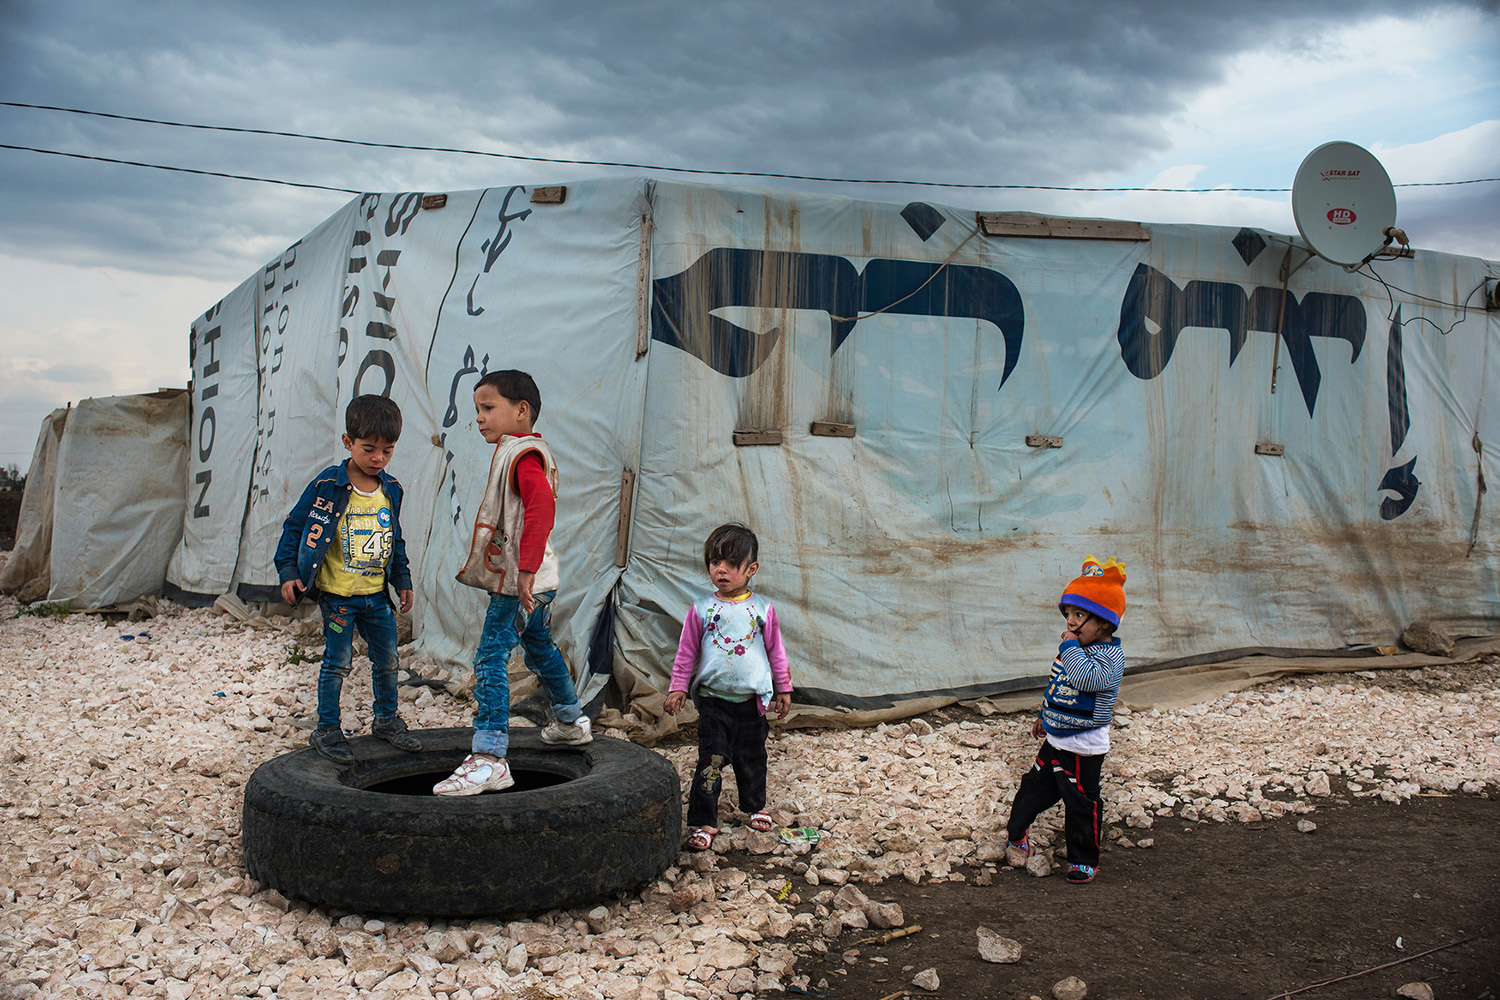 Refugee children playing in a makeshift settlement in the Bekaa Valley, Lebanon, on November 04, 2015. There are almost 1.5 million refugees registered by UNHCR living in Lebanon. A recent report says that 70% of Syrian refugees live bellow the poverty line (U$ 3.84 in Lebanon) and 90% are in debt.